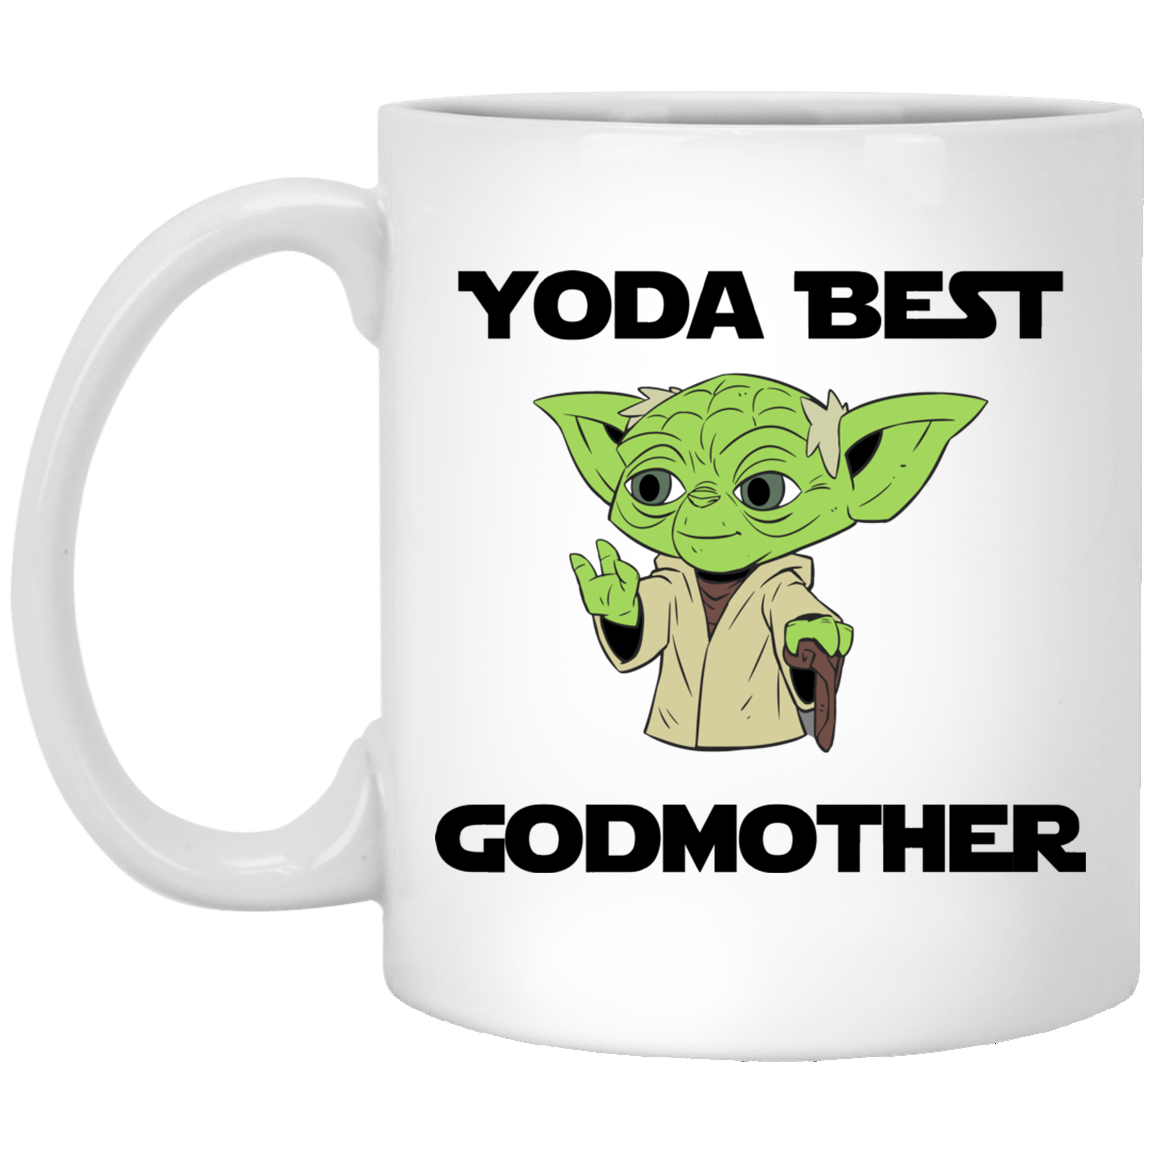 Yoda Best Godmother Mug